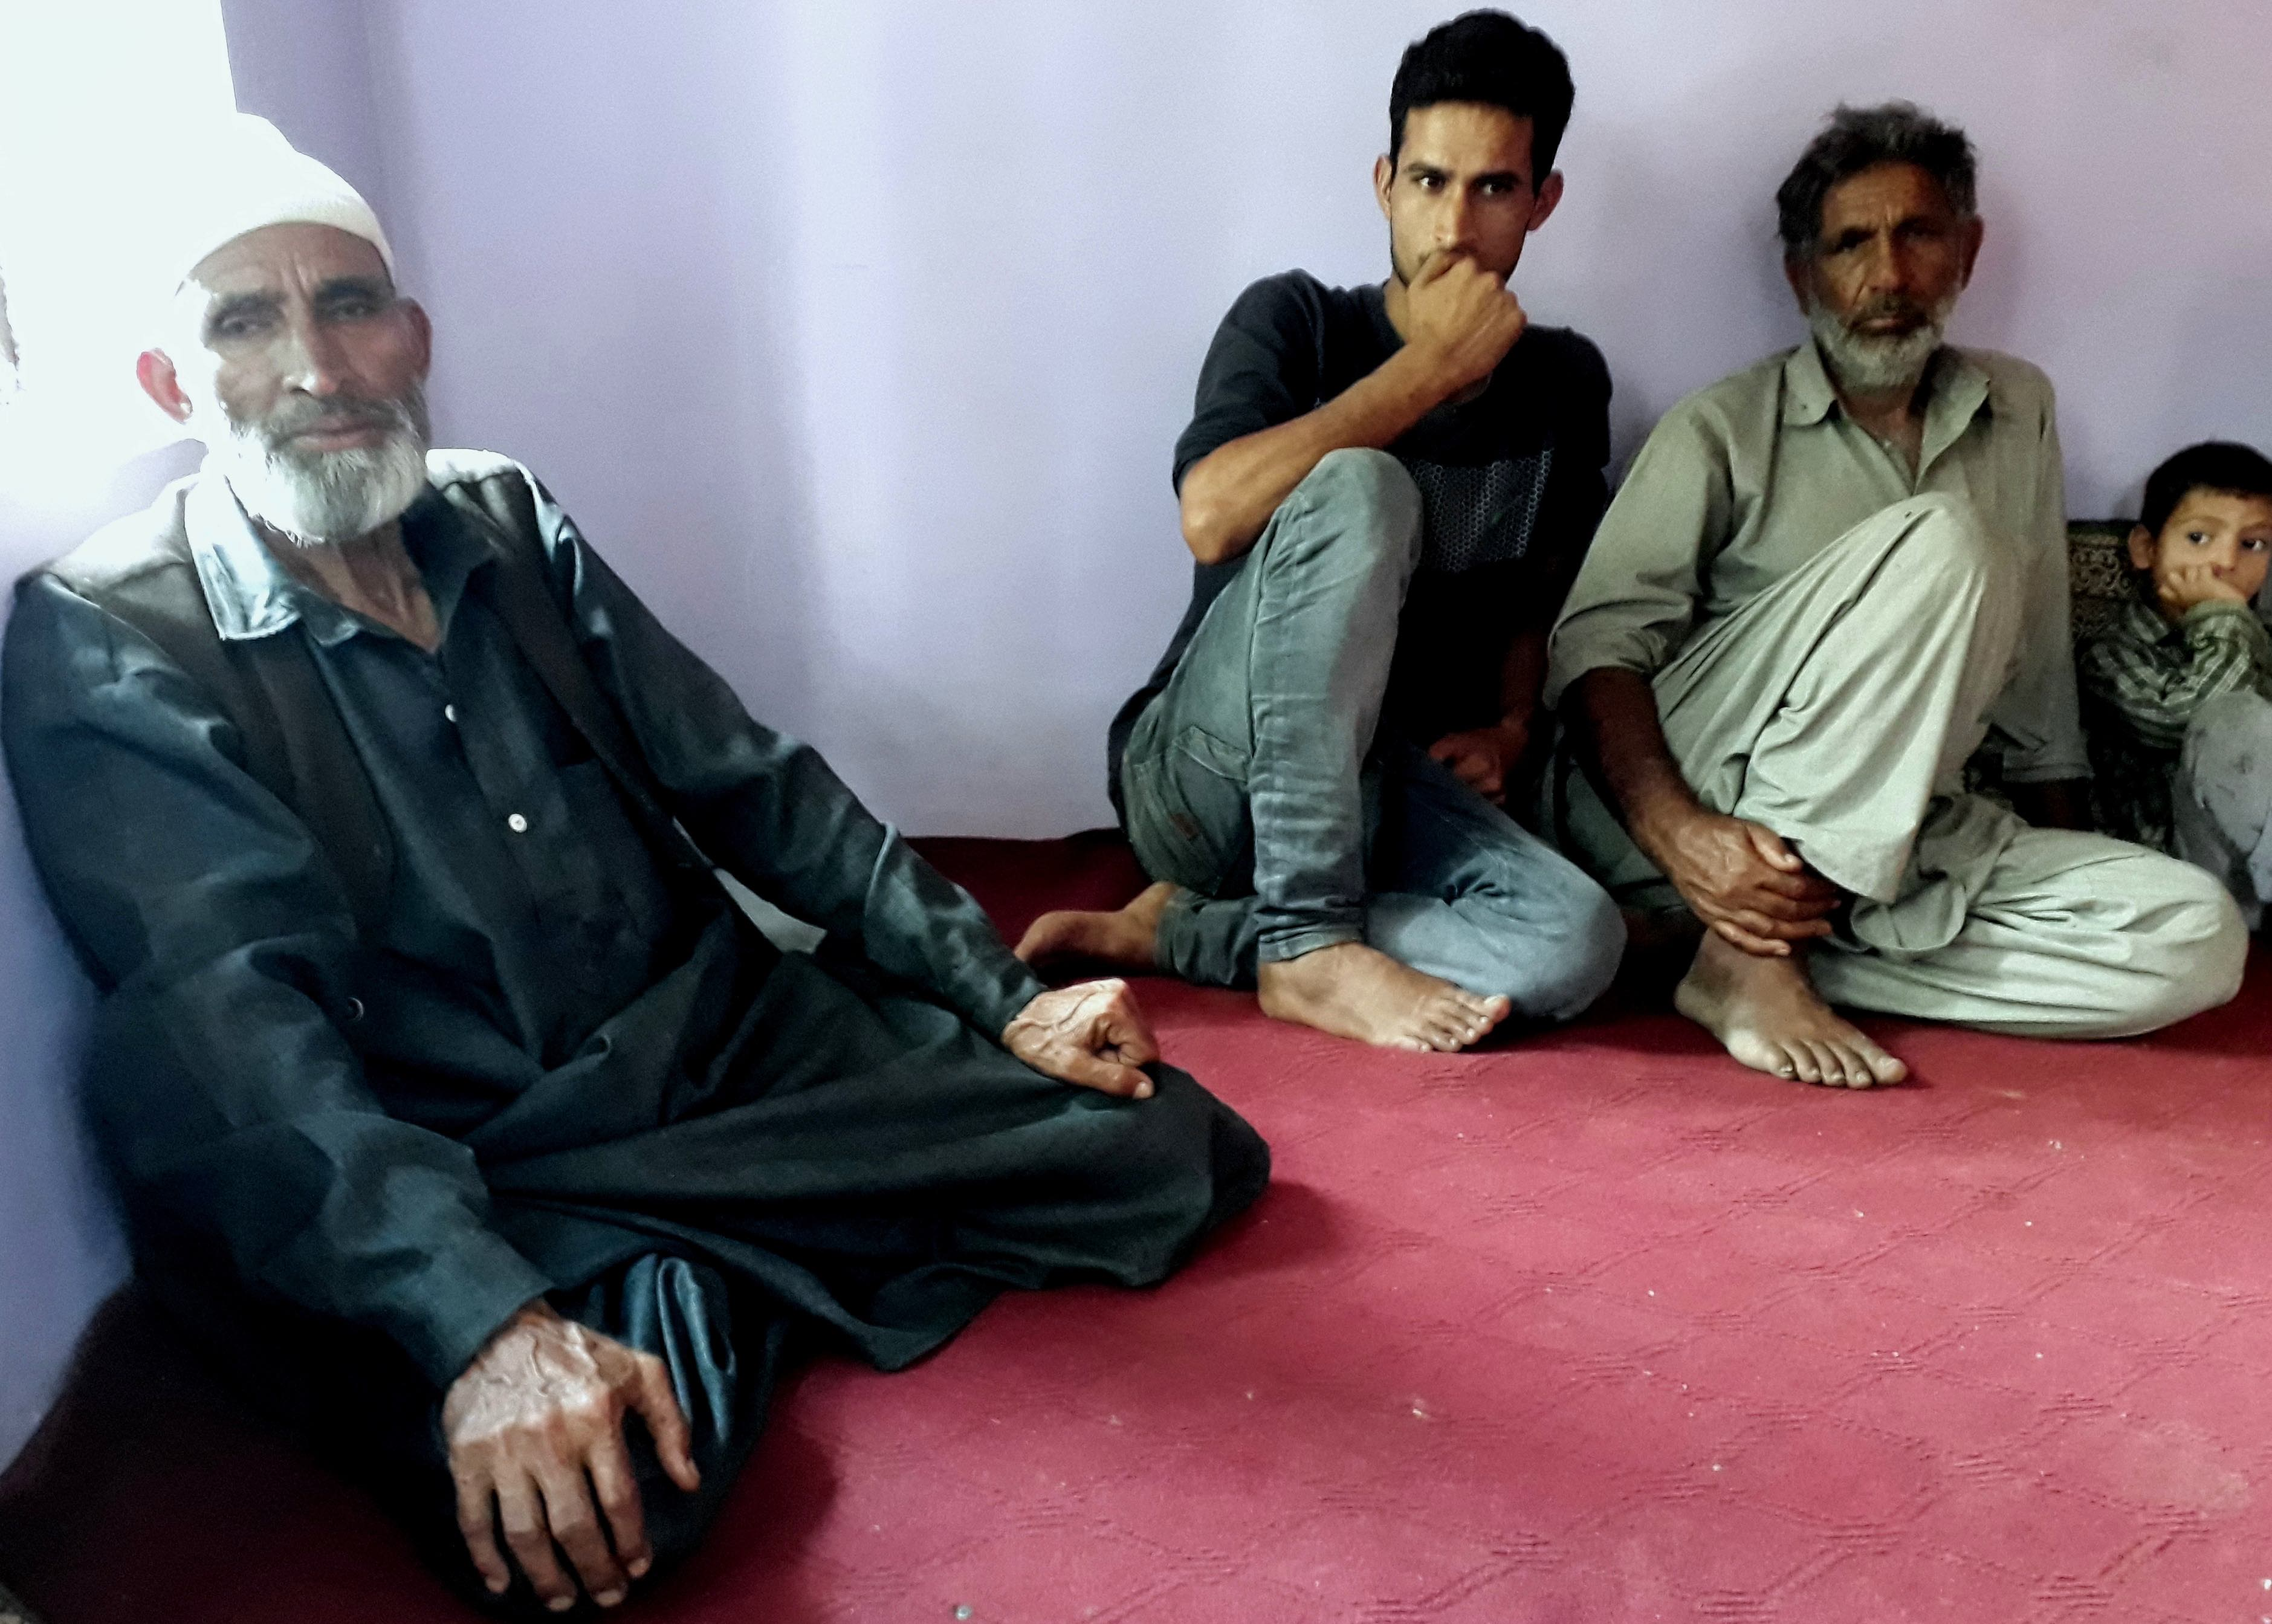 From left: Father of Riyaz Ahmad, his son Aijaz and father of Shehzad discussing the army tribunal verdict. Credit: The Wire